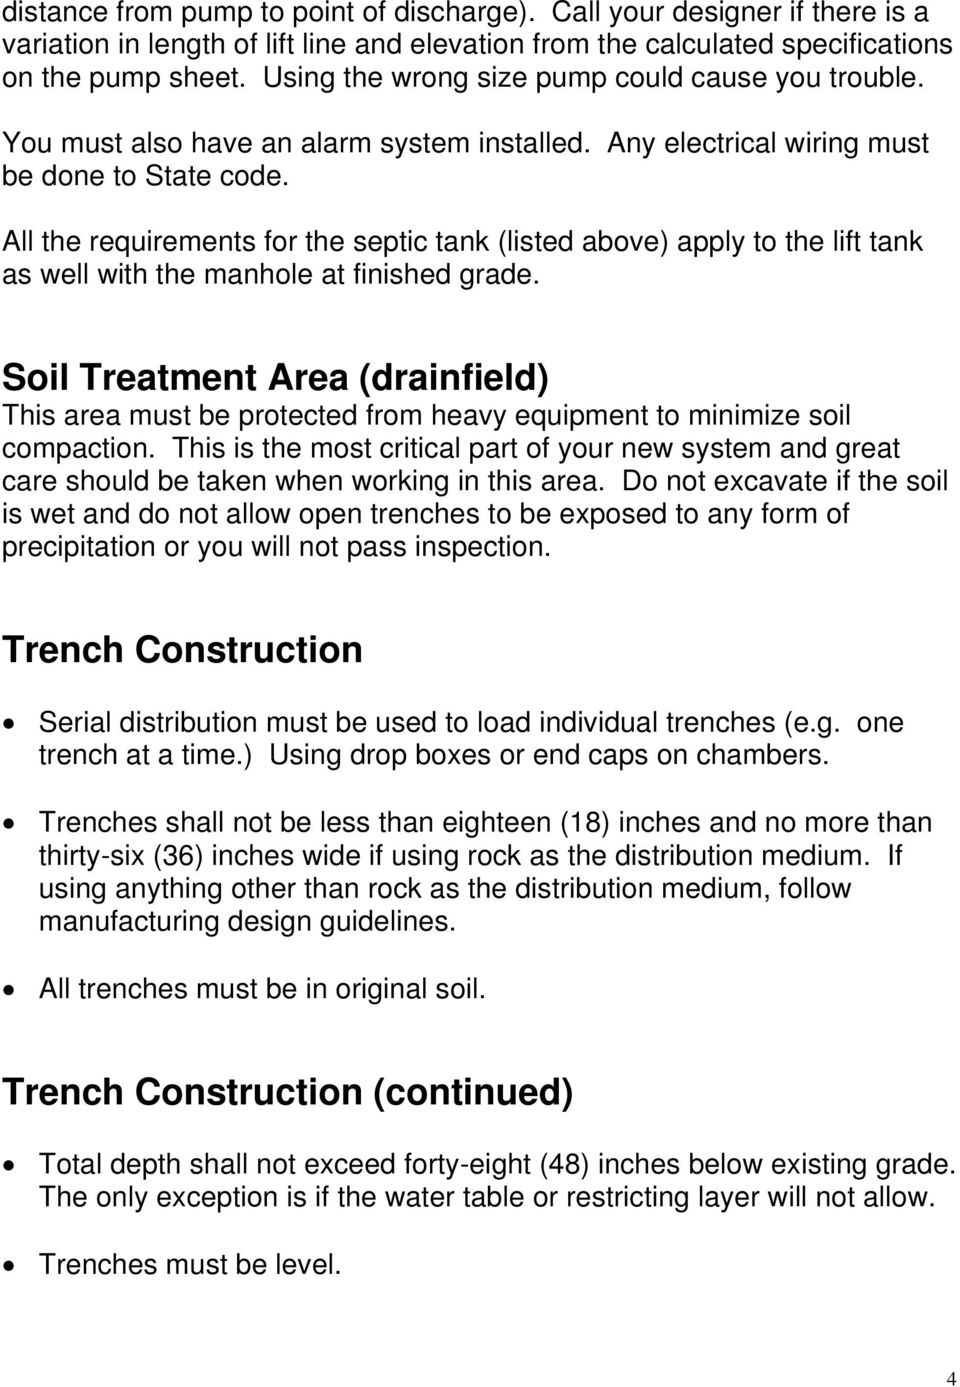 All the requirements for the septic tank (listed above) apply to the lift tank as well with the manhole at finished grade.